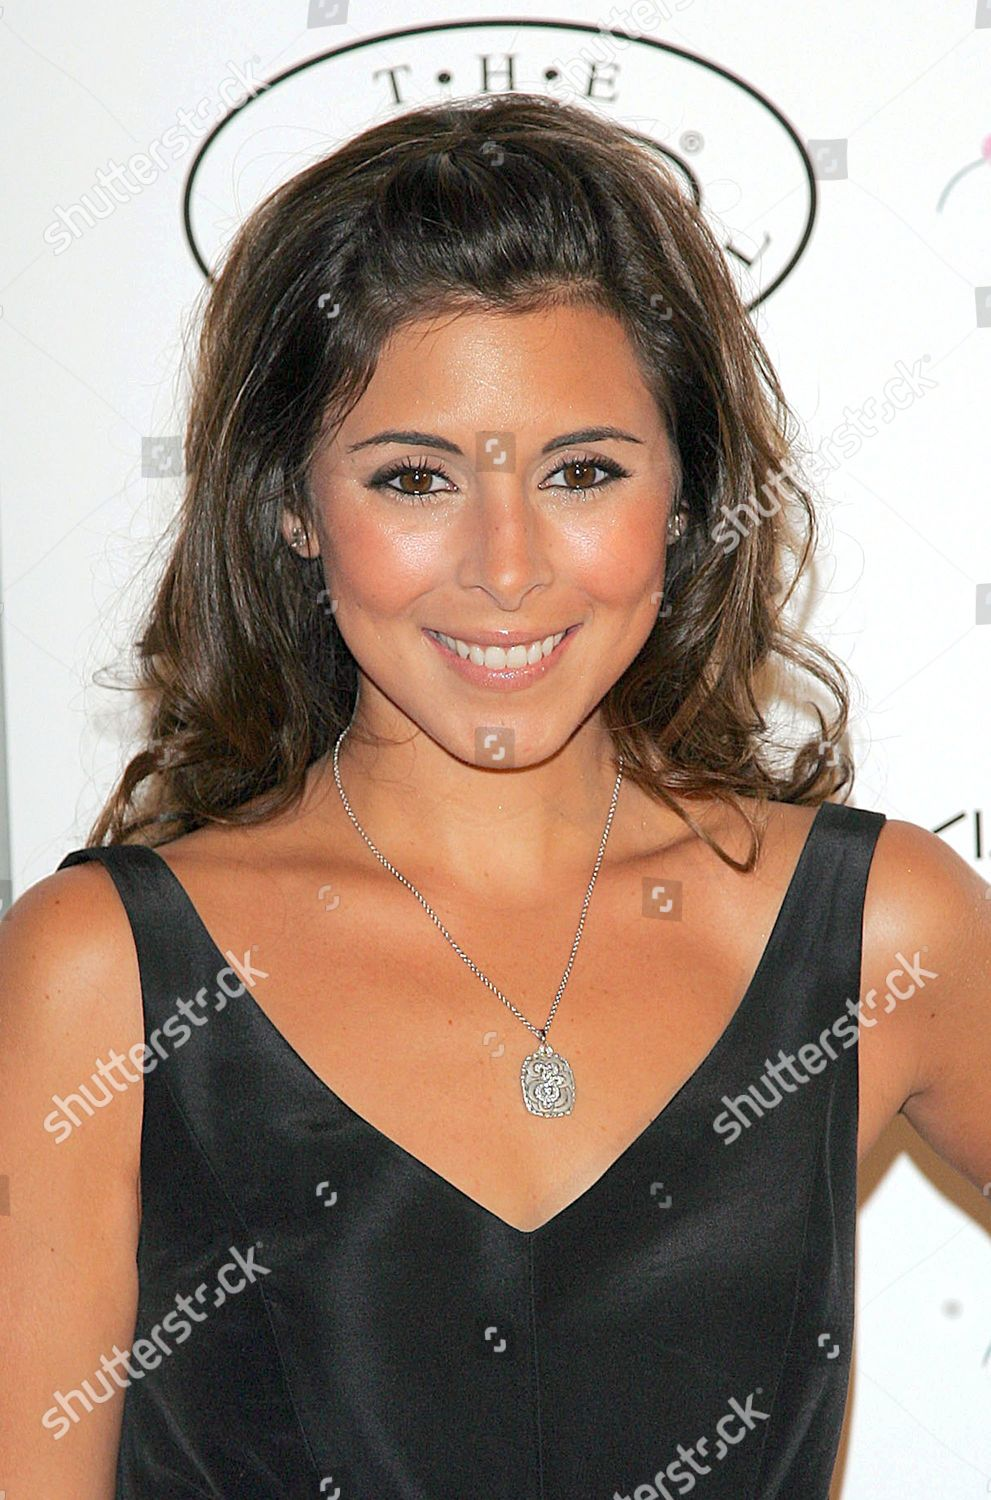 Something jamie lynn sigler breast certainly